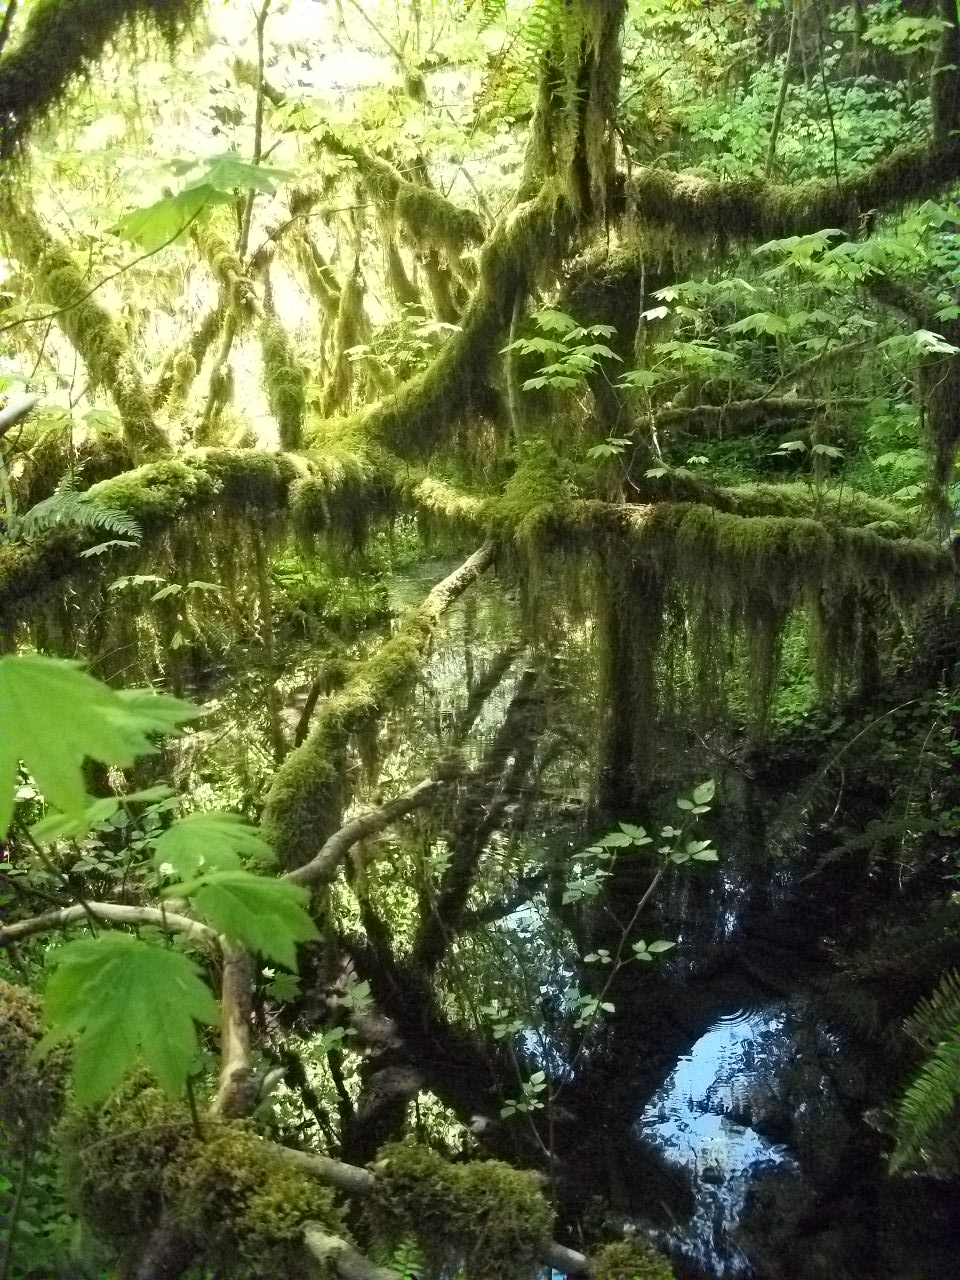 Louisiana hidden in the Hoh Rainforest in WA by pokemontrainerjay